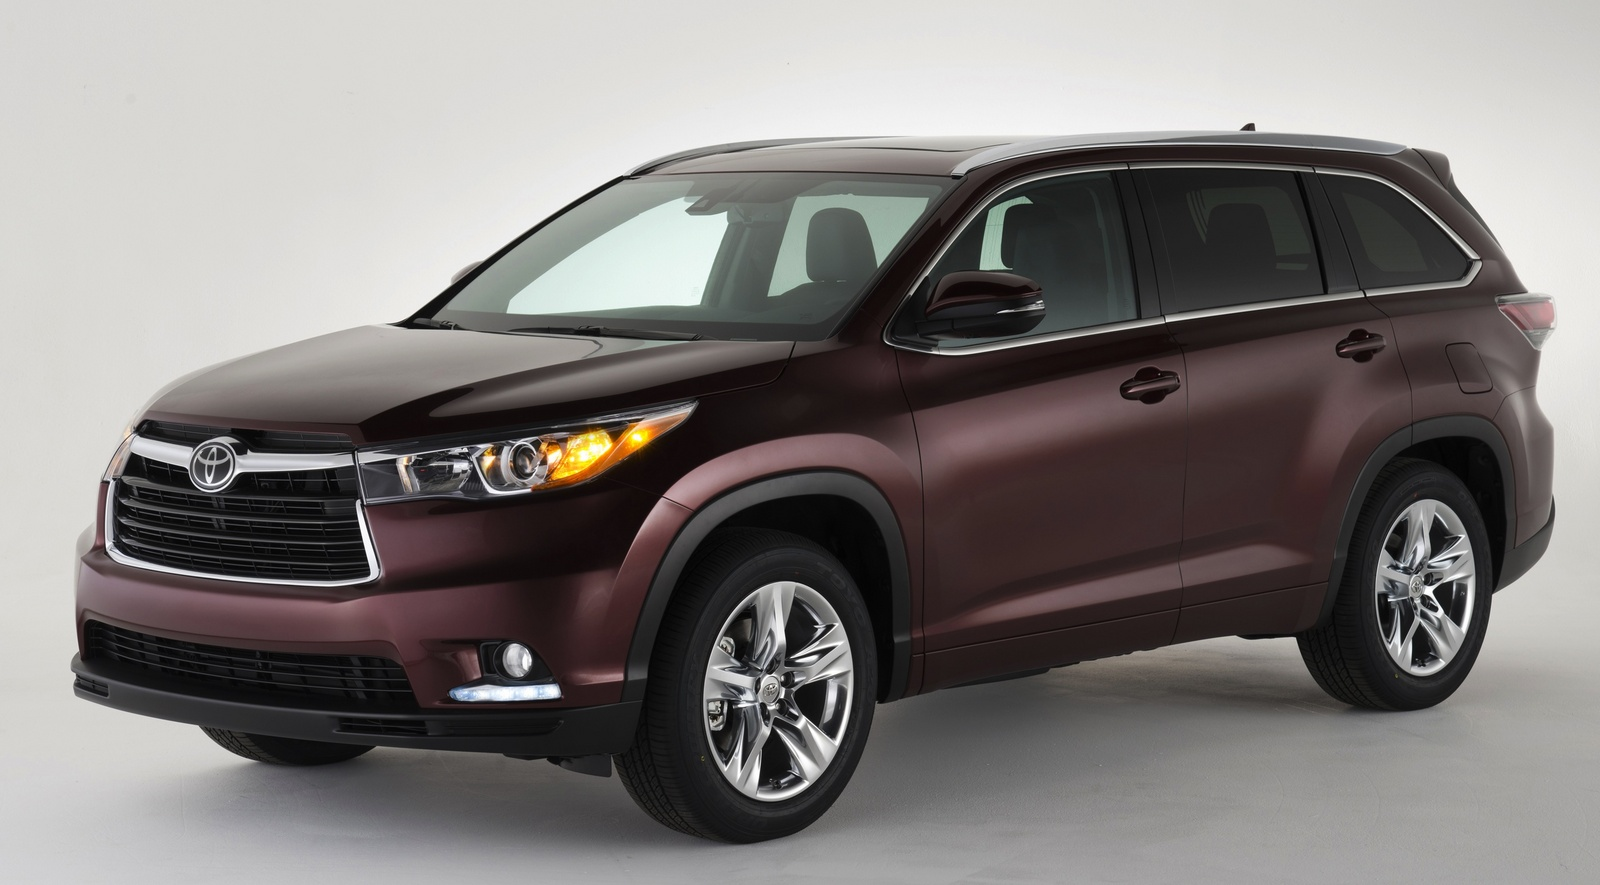 True Dealer Price On Toyota Highlander 2015 | Autos Post